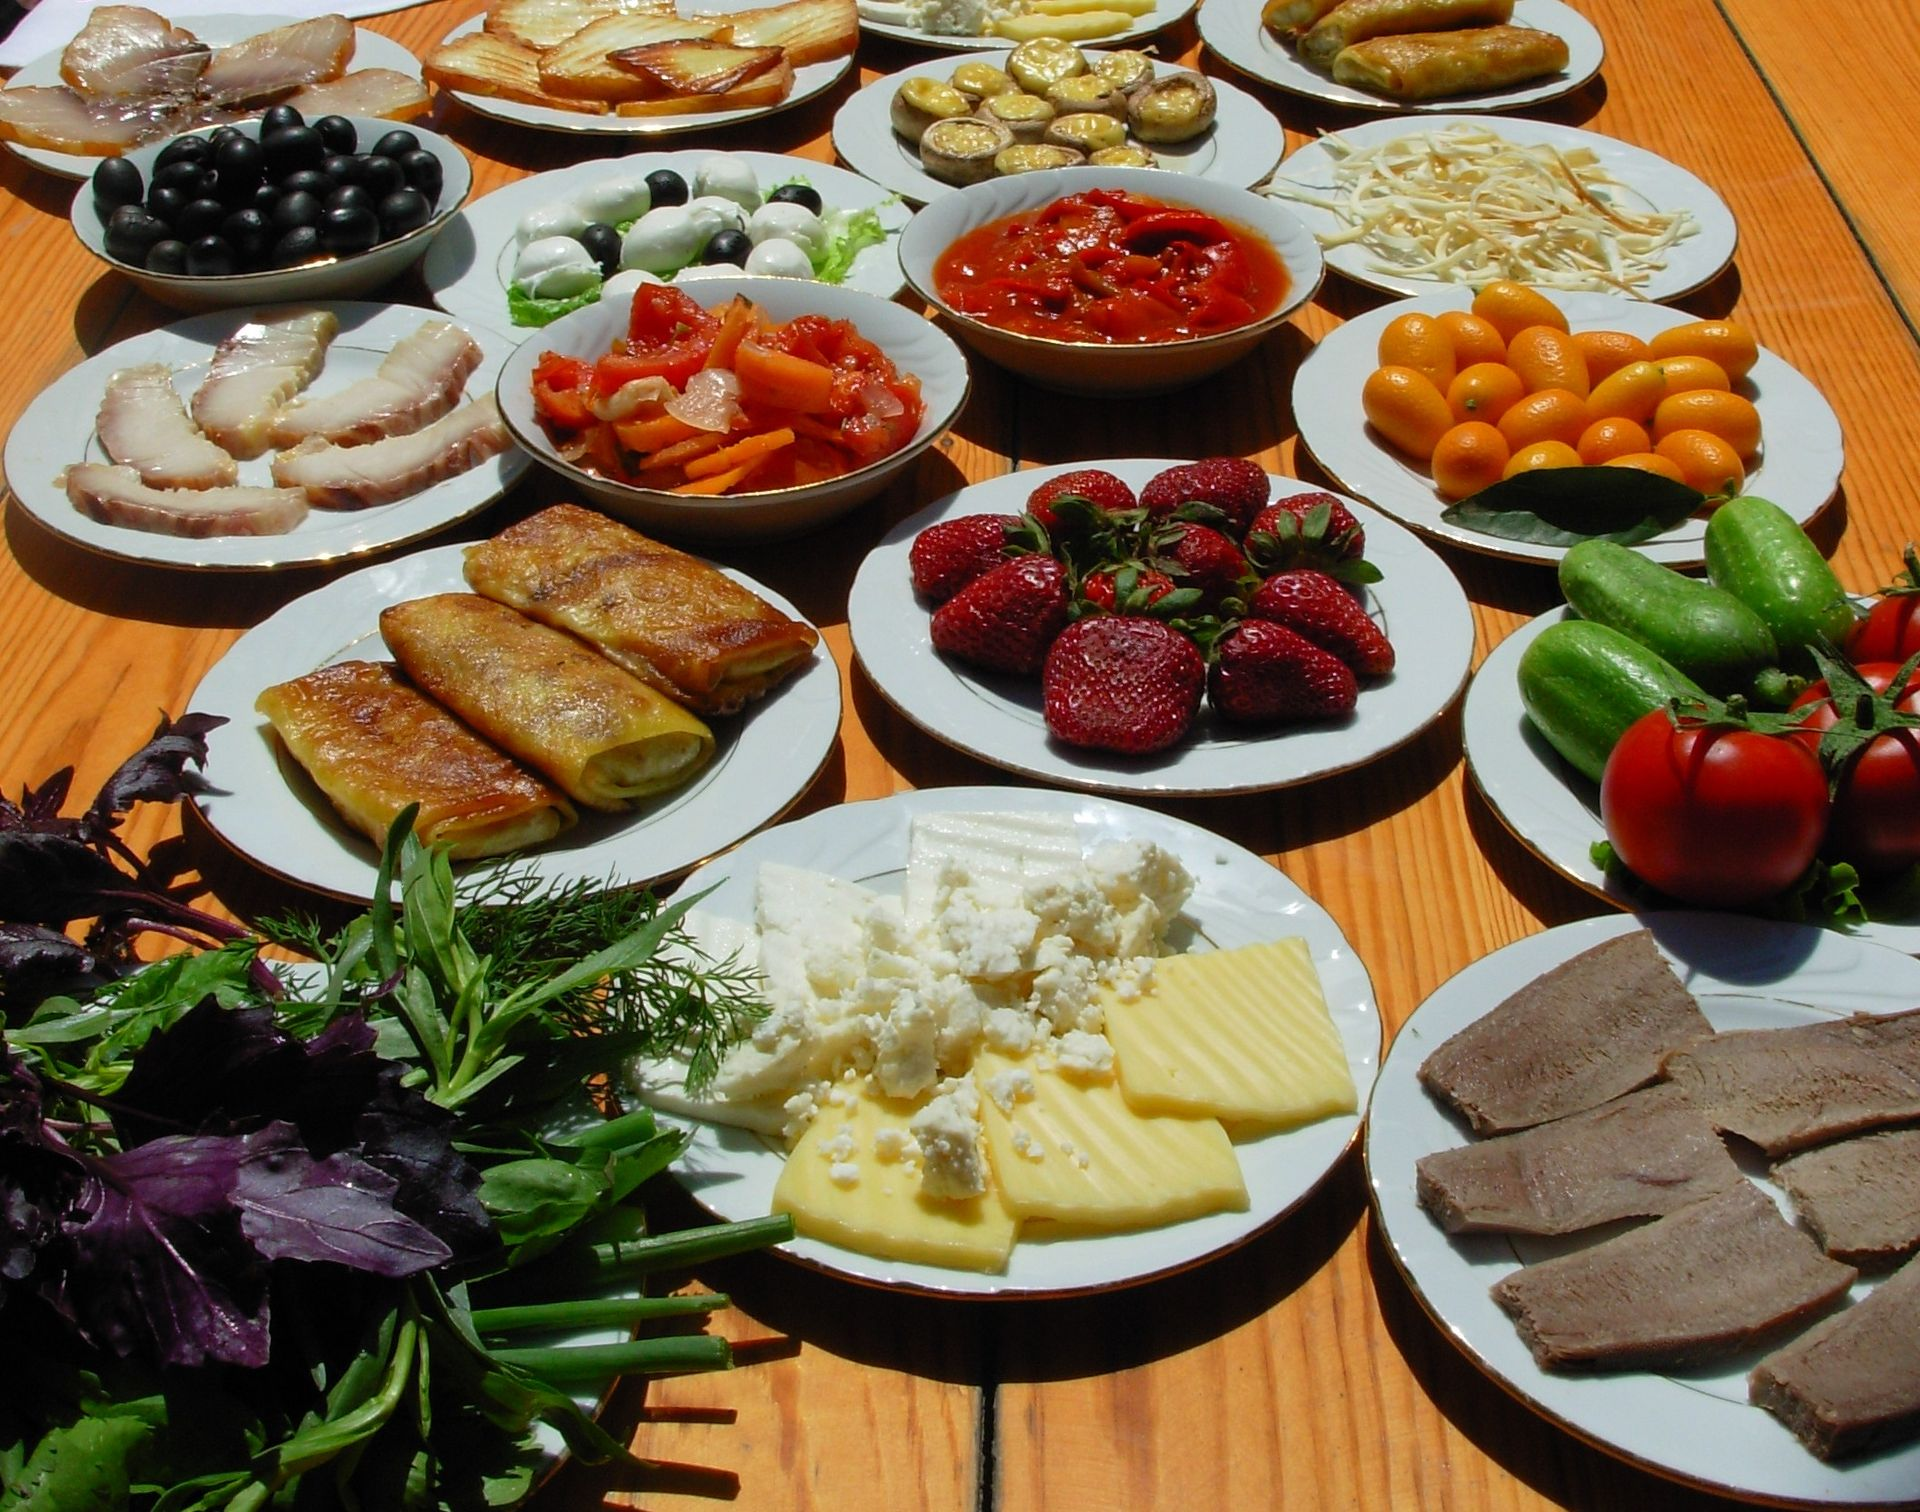 Azerbaijani cuisine wikipedia for Cuisine wikipedia